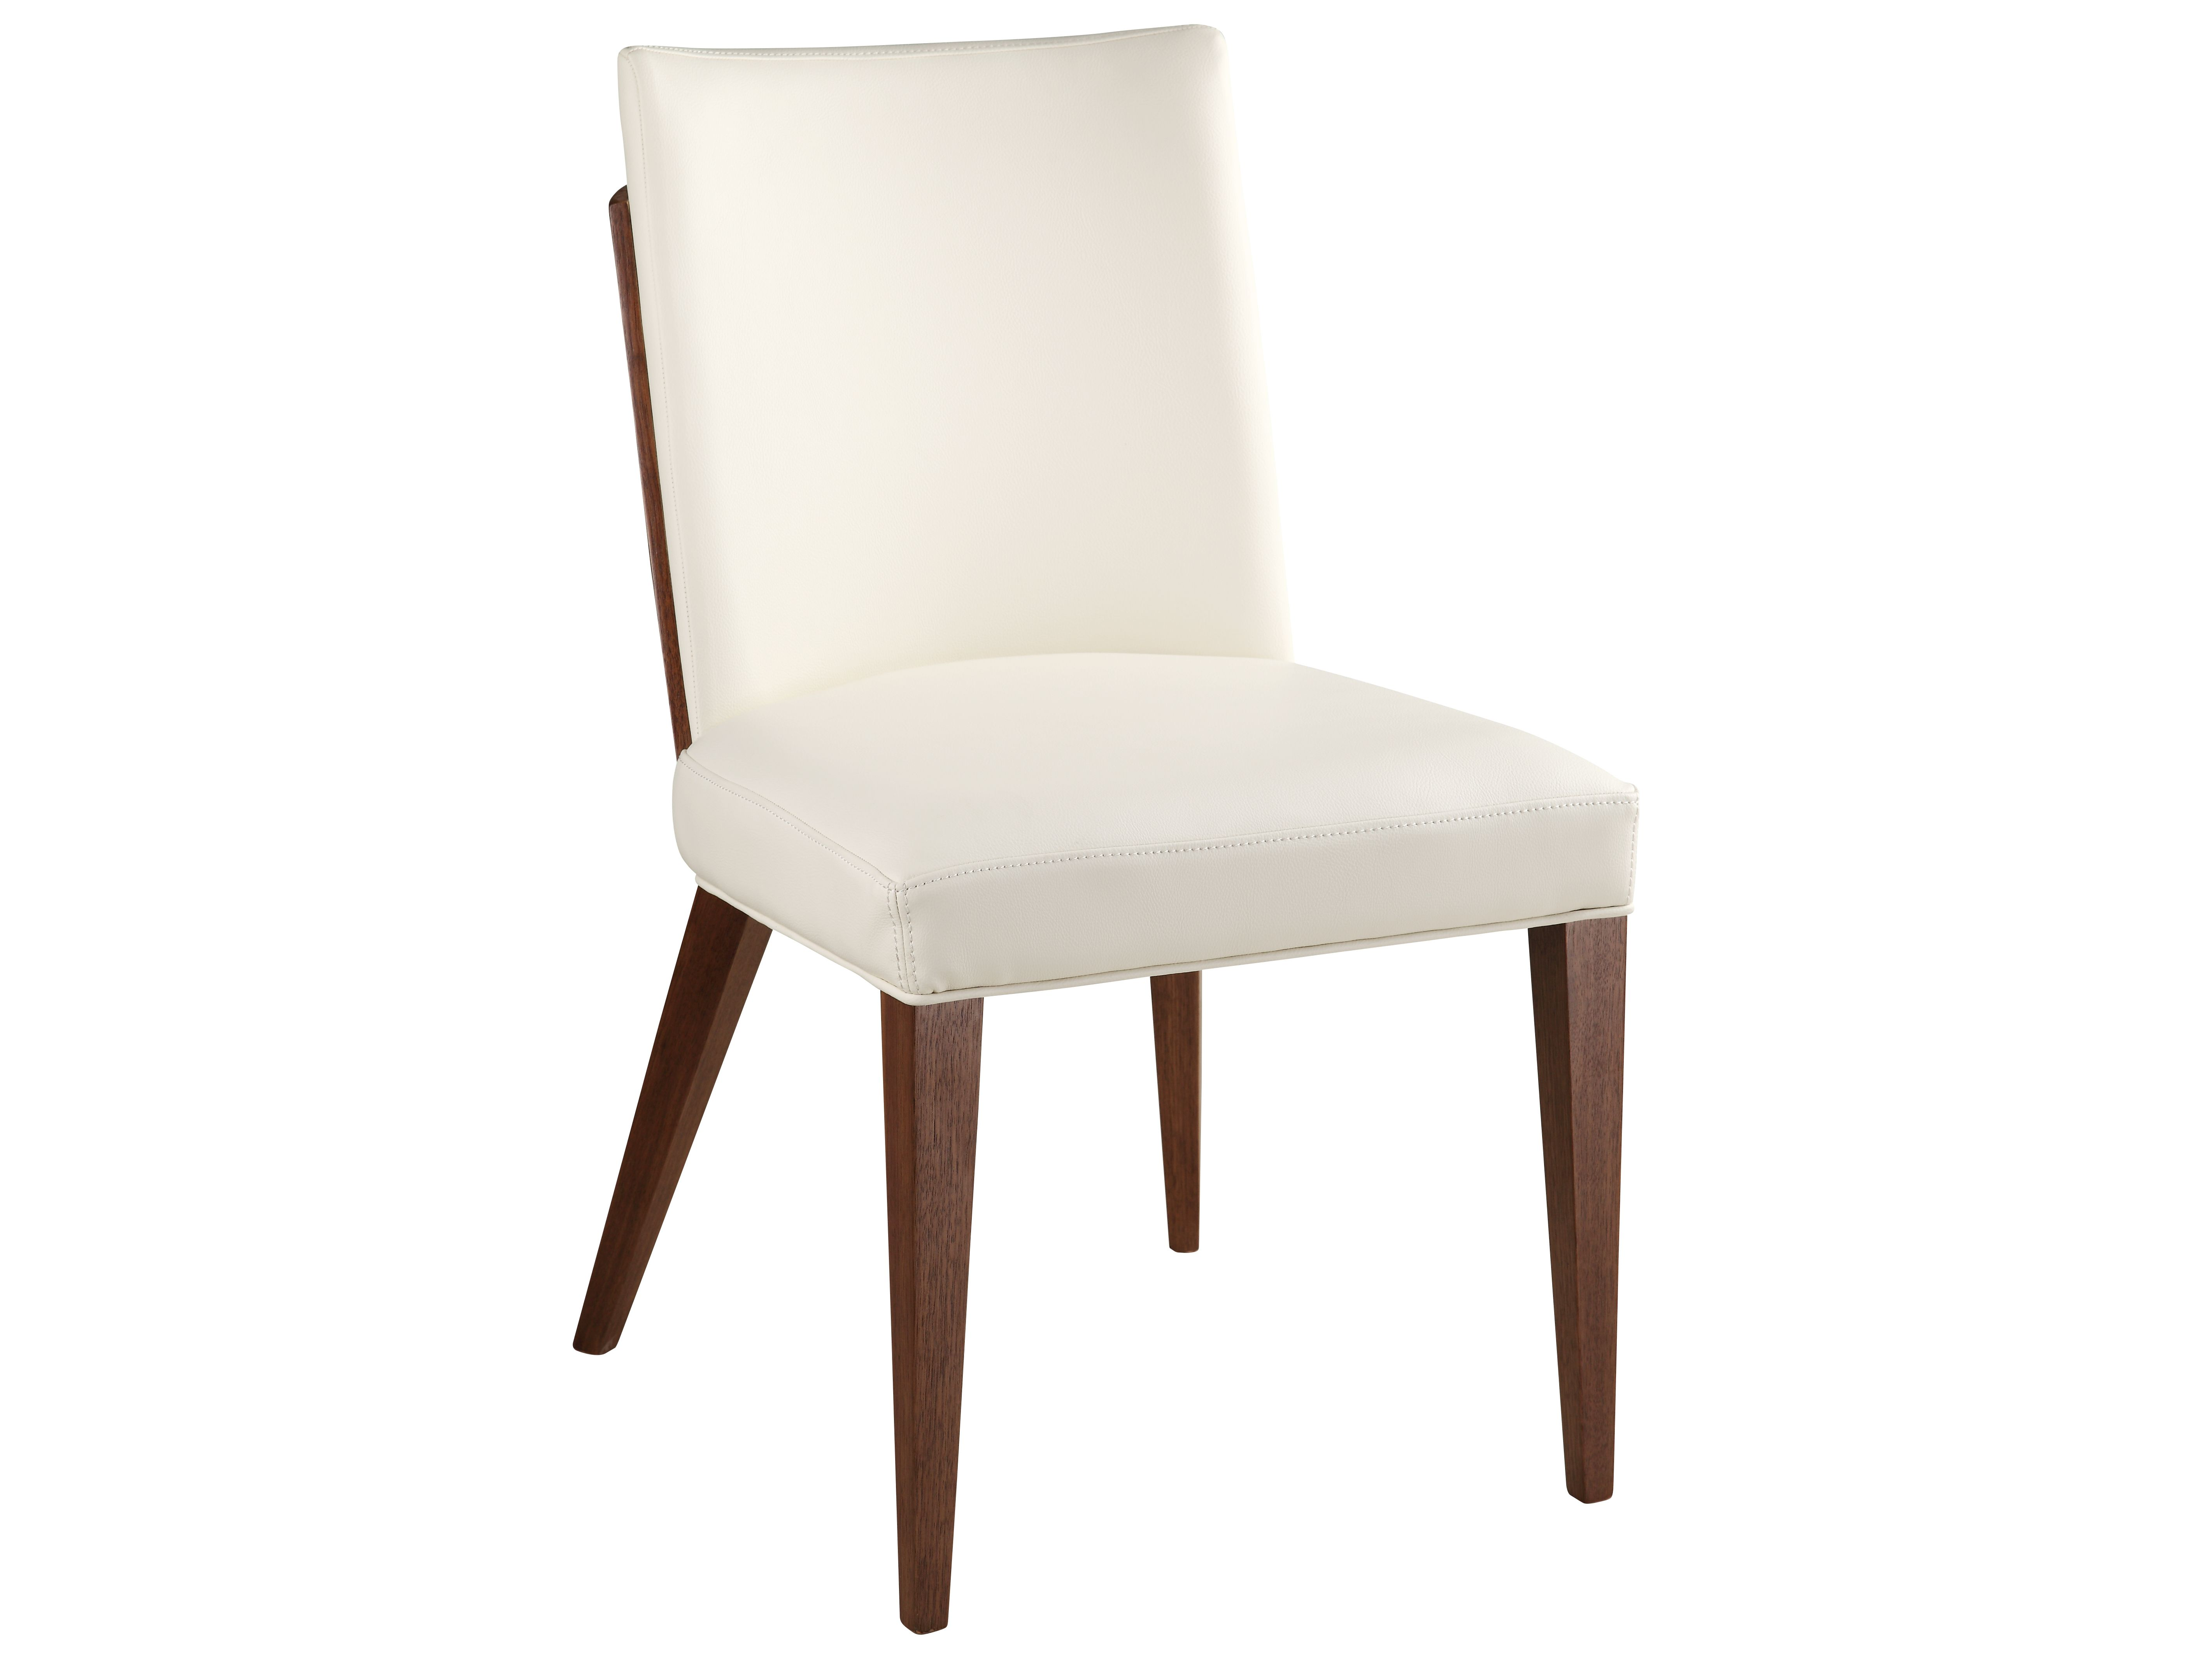 Moes home collection copenhagen white dining chair with solid birch wood legs sold in 2